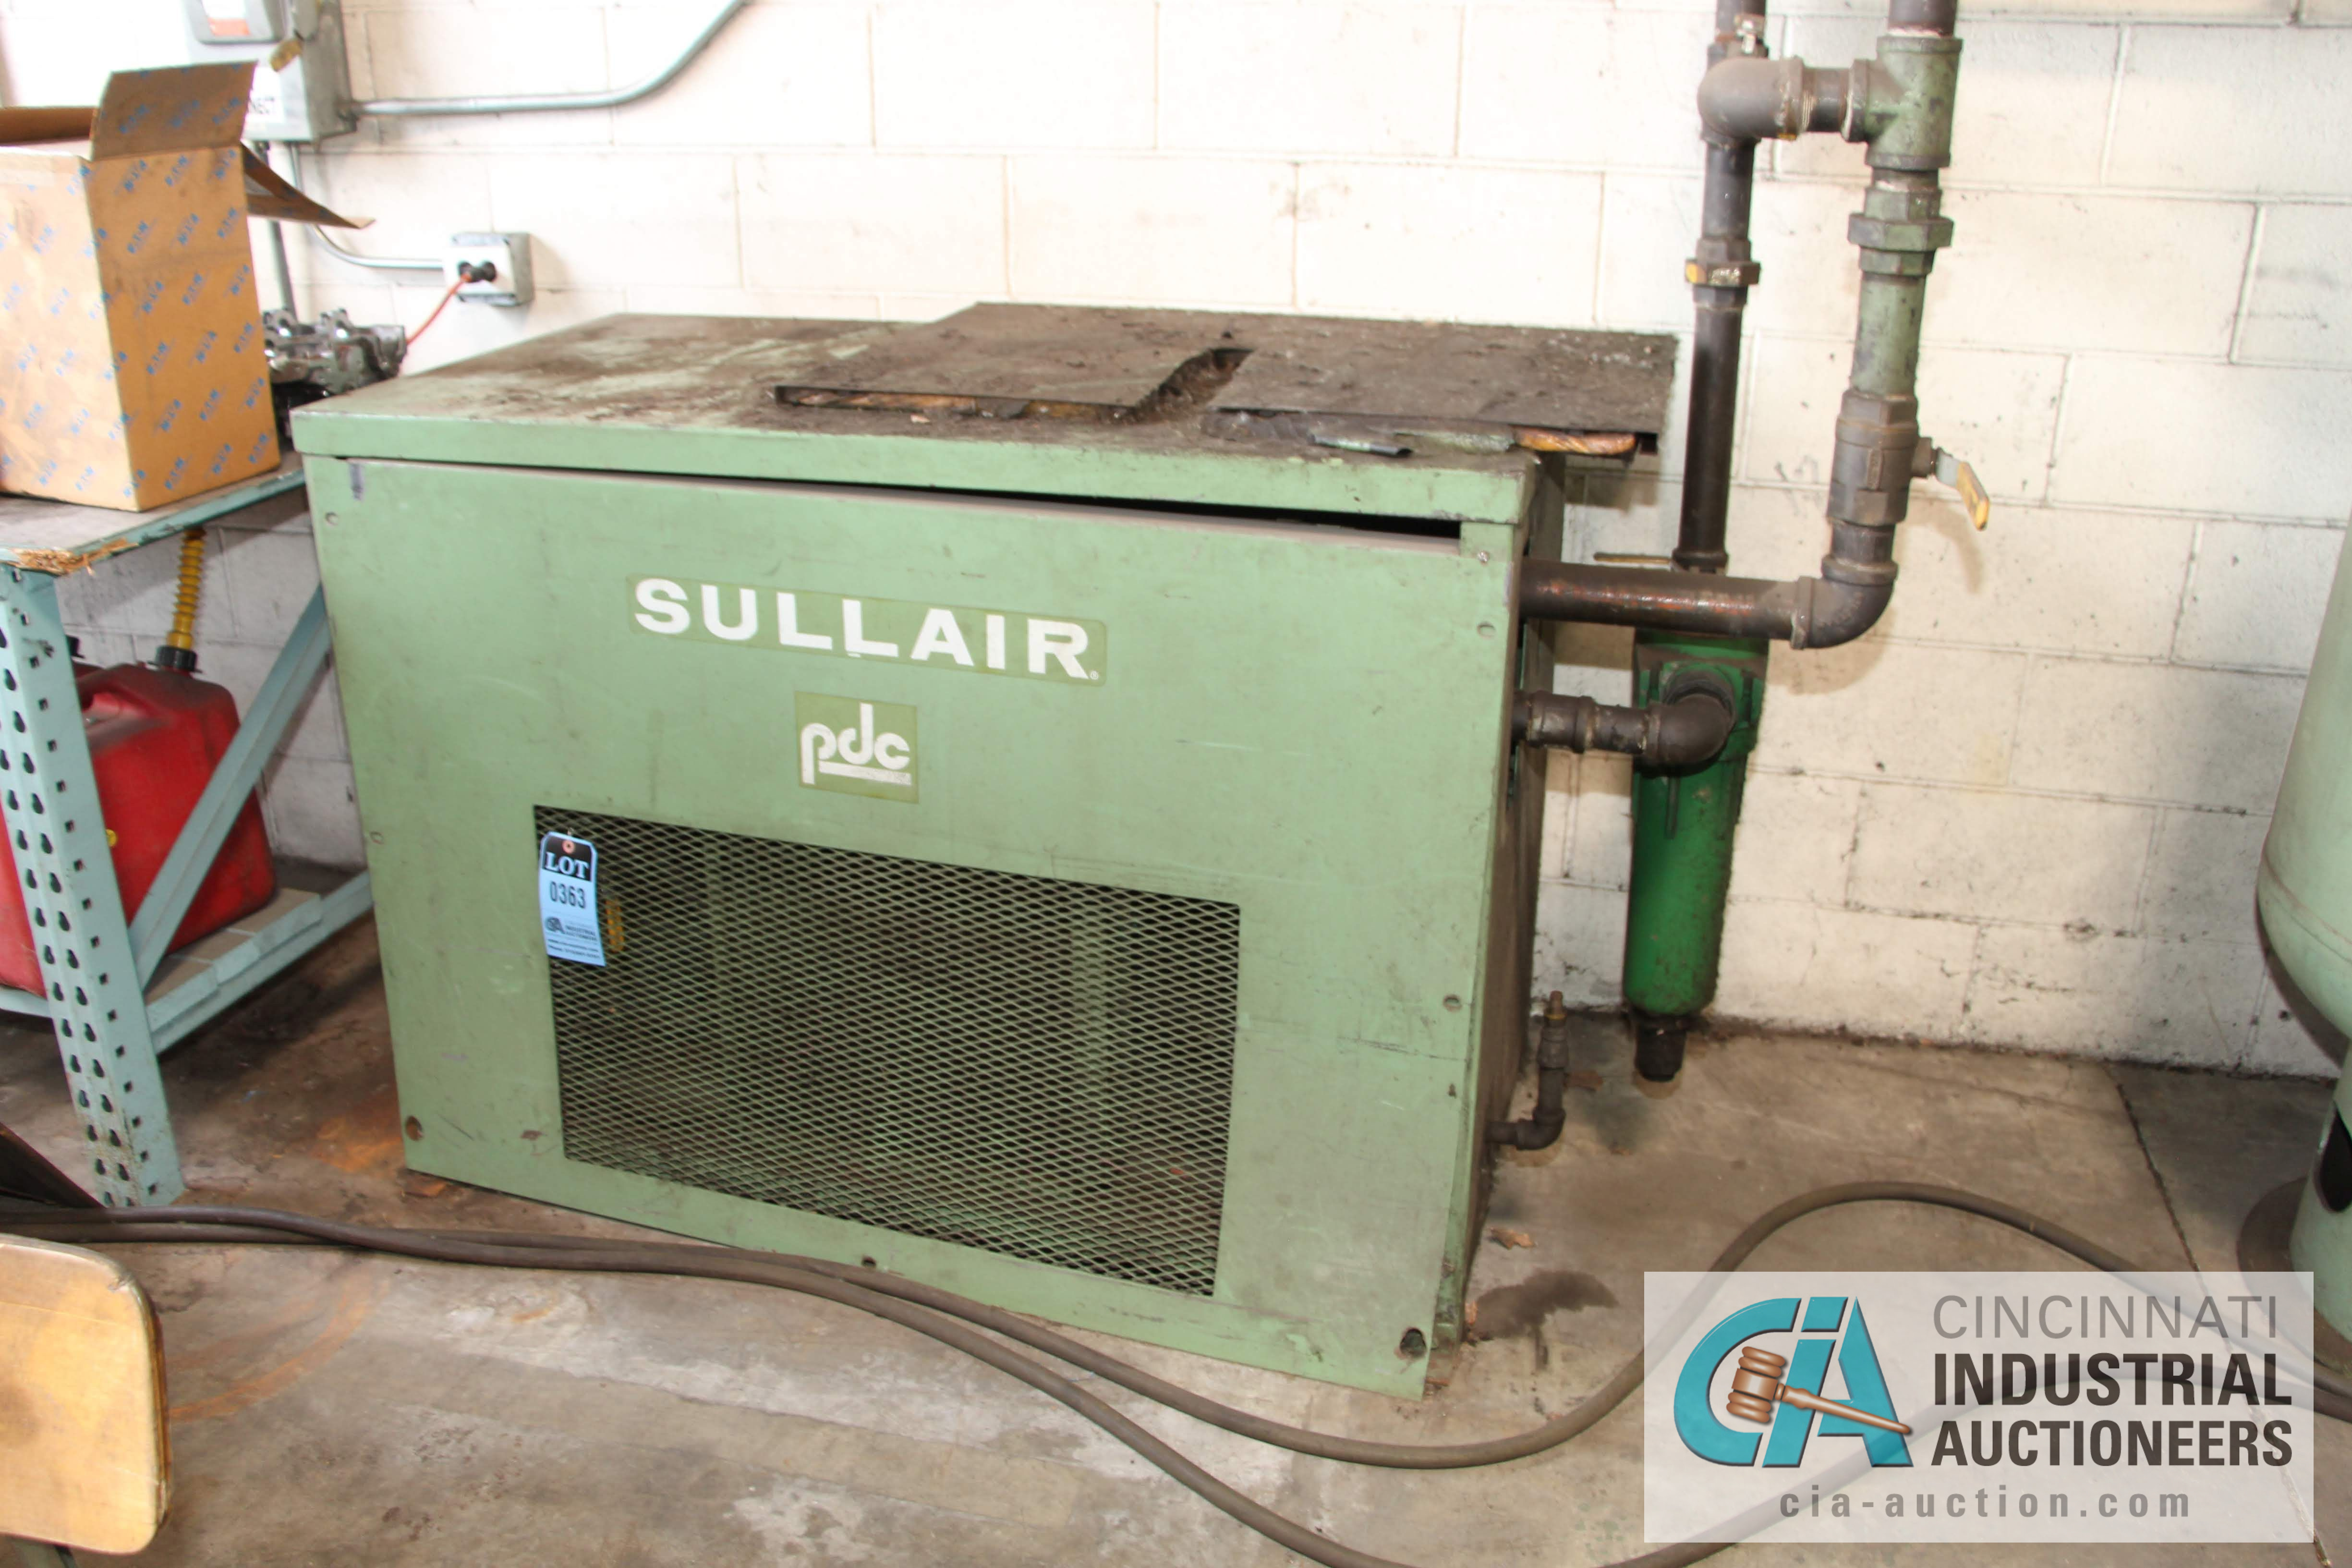 SULLAIR MODEL PDC-250 A/C AIR DRYER - $20.00 Rigging Fee Due to Onsite Rigger - Located in